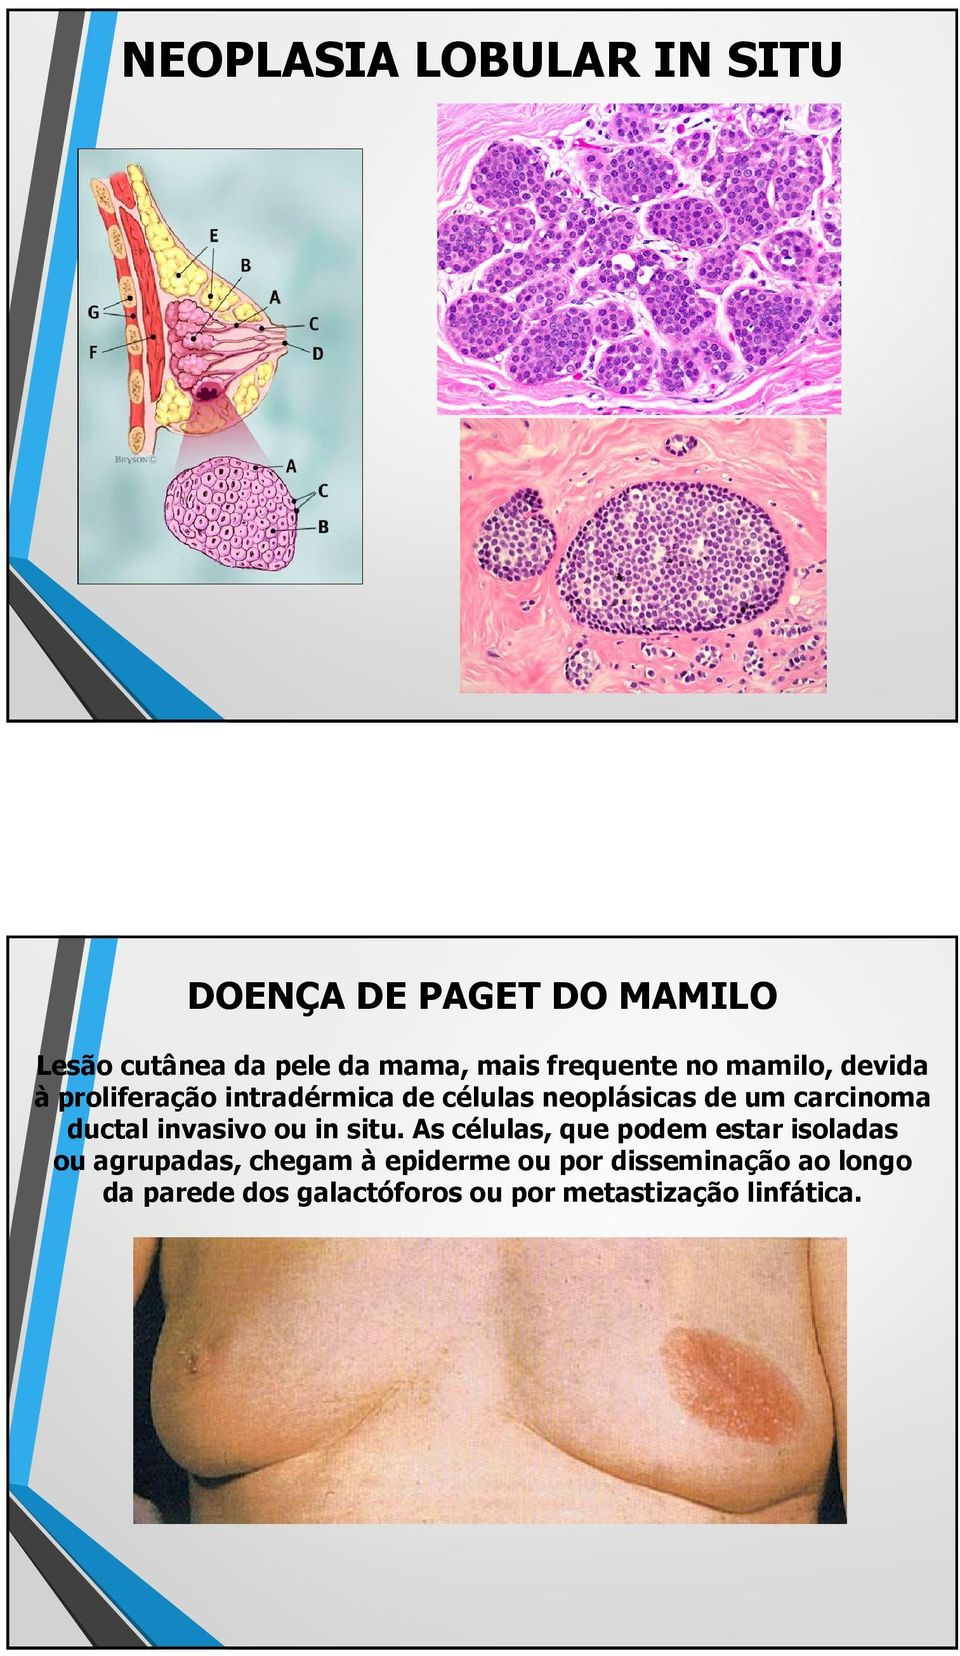 carcinoma ductal invasivo ou in situ.